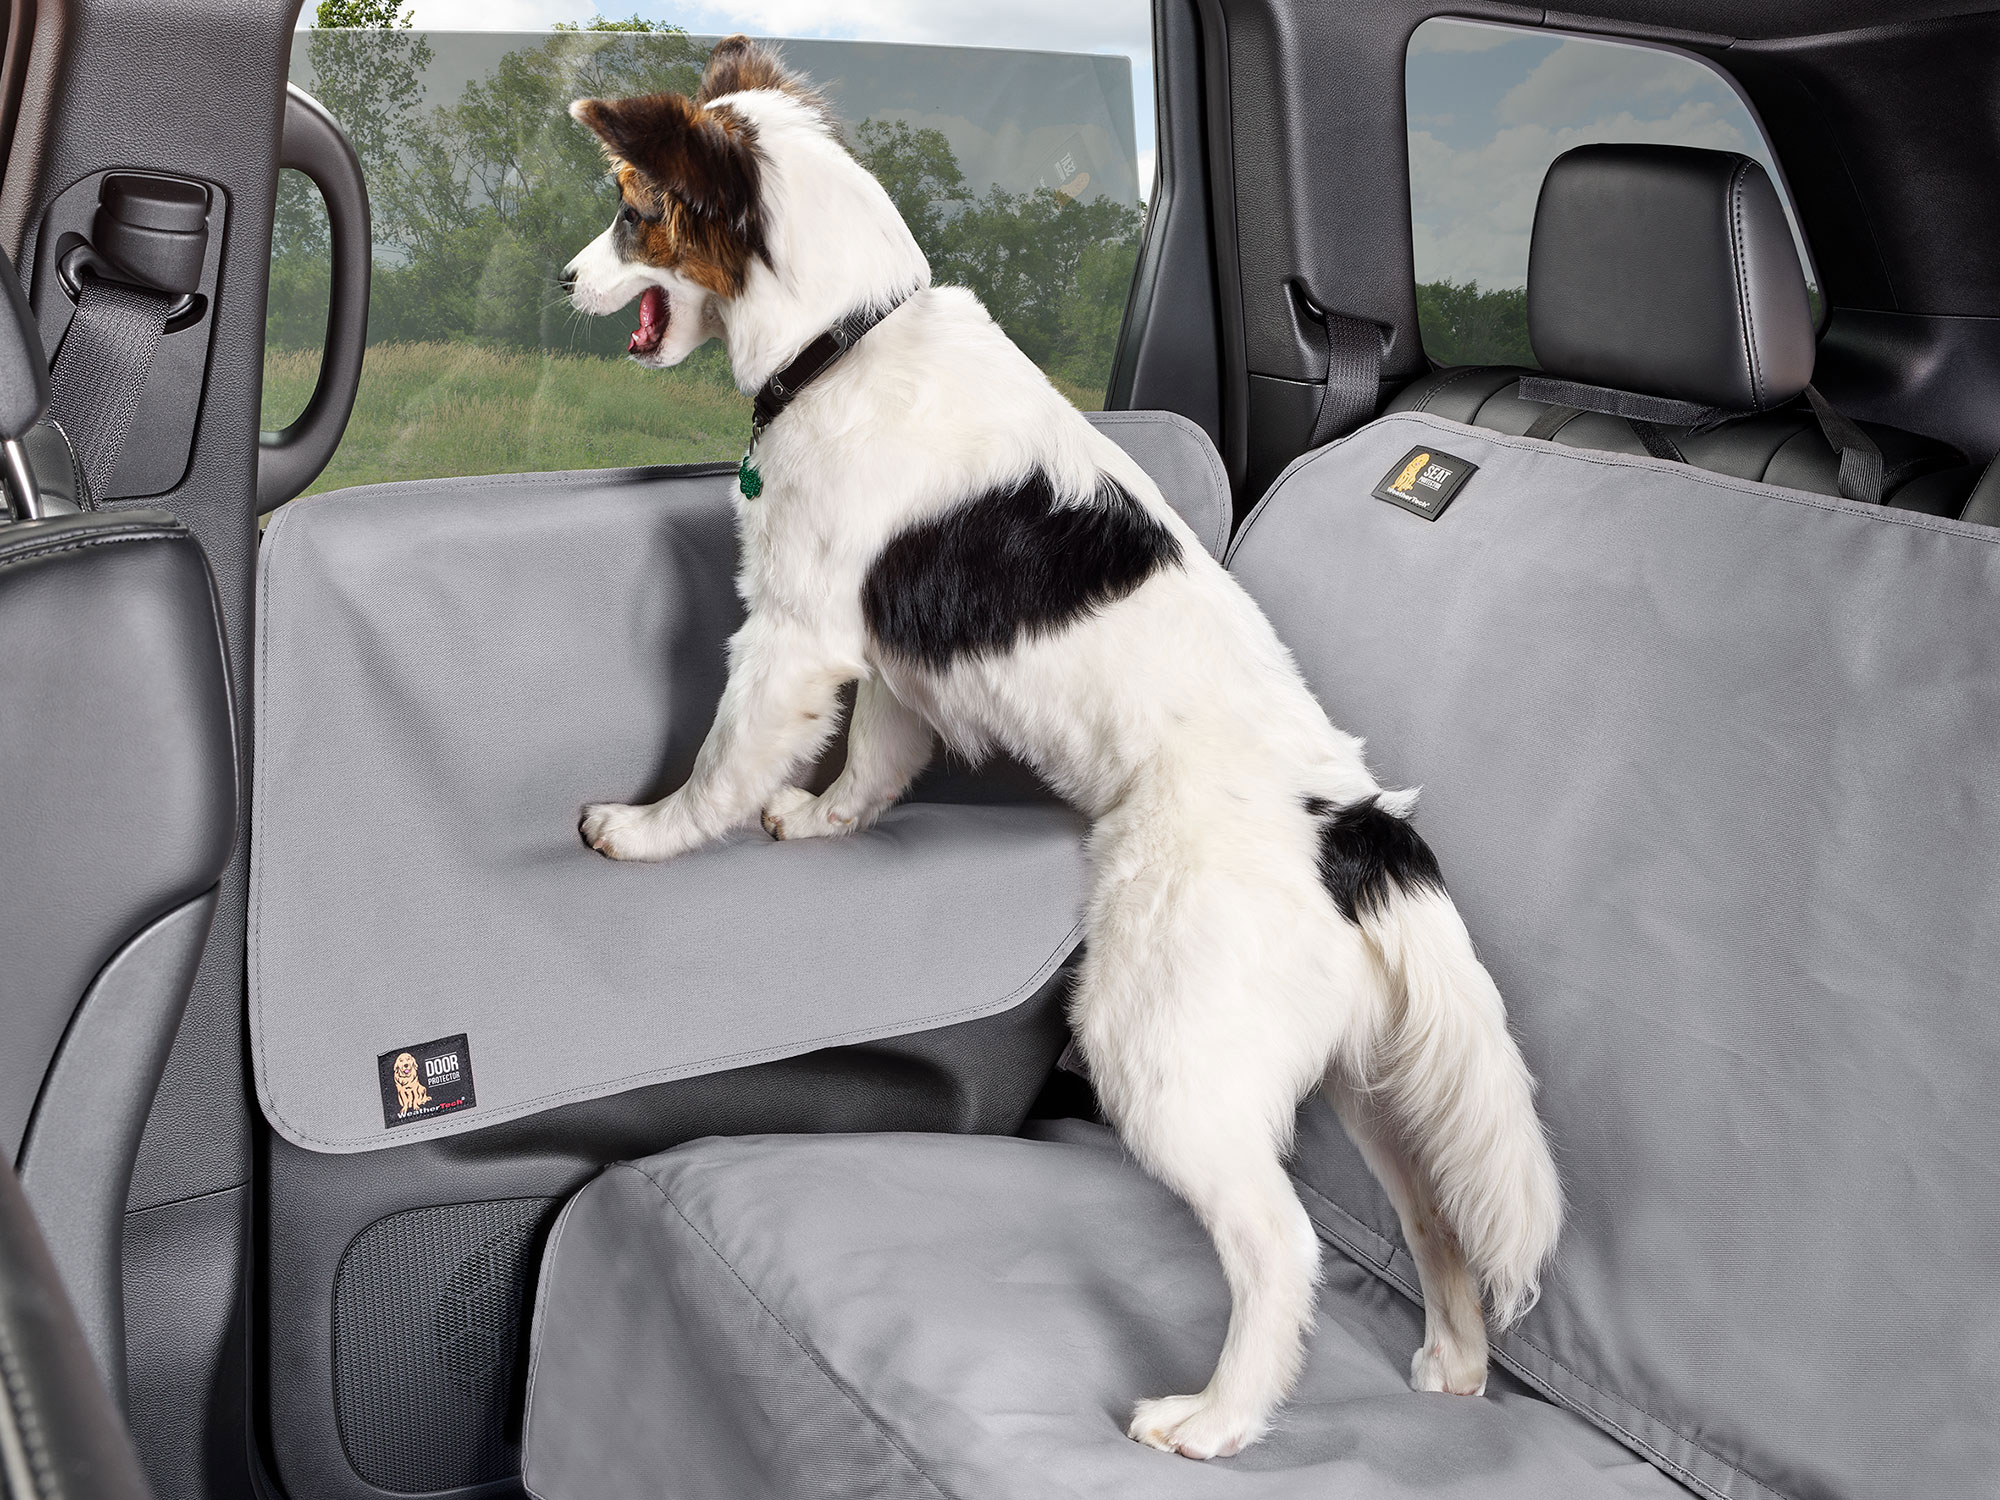 Door_Protector_In_Use_With_Dog_SEAT_PROTECTOR2